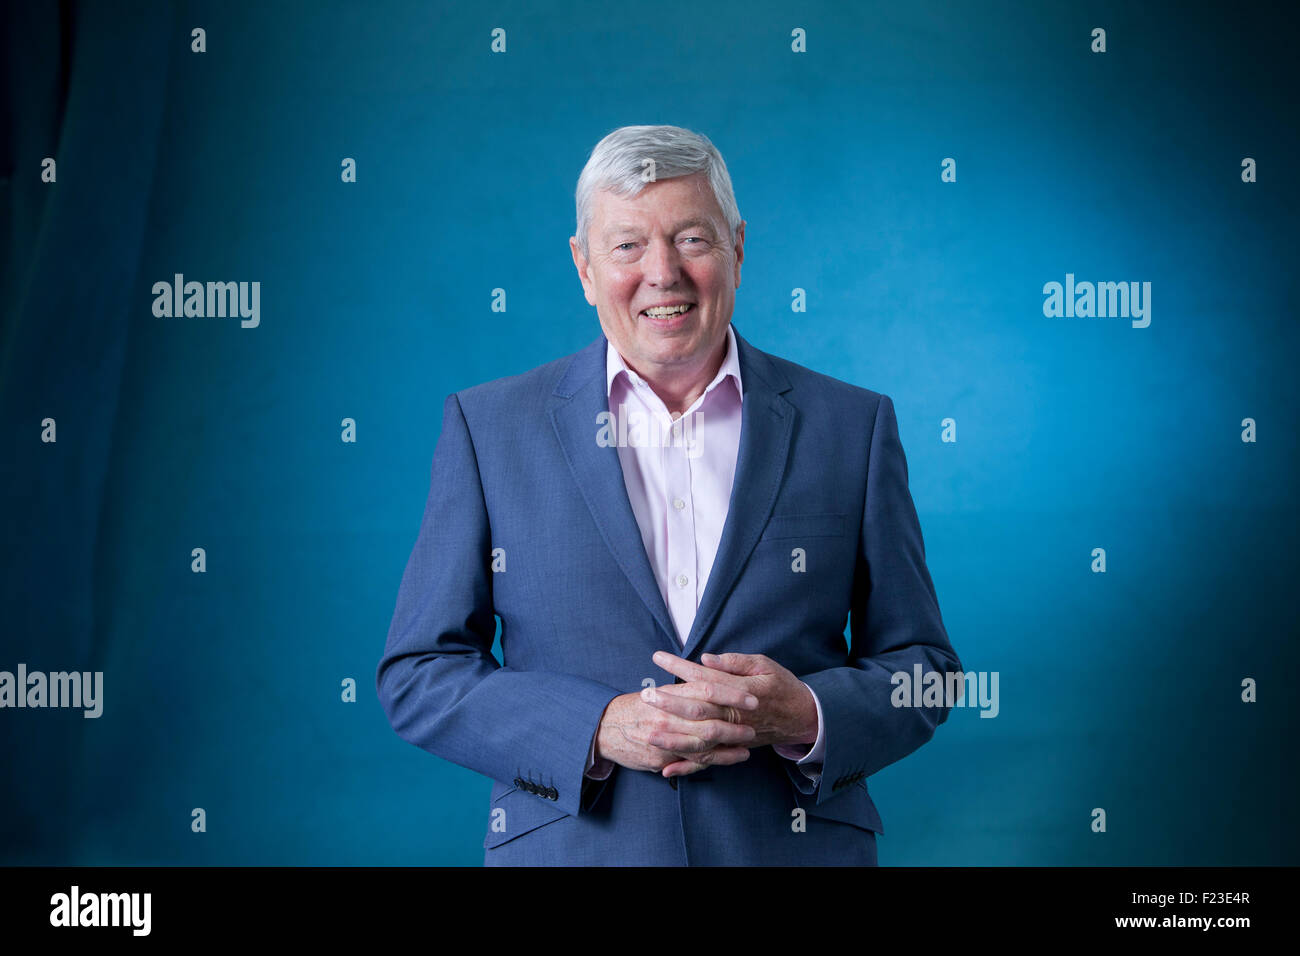 Alan Johnson, British Labour Party politician and writer, at the Edinburgh International Book Festival 2015. Edinburgh, - Stock Image